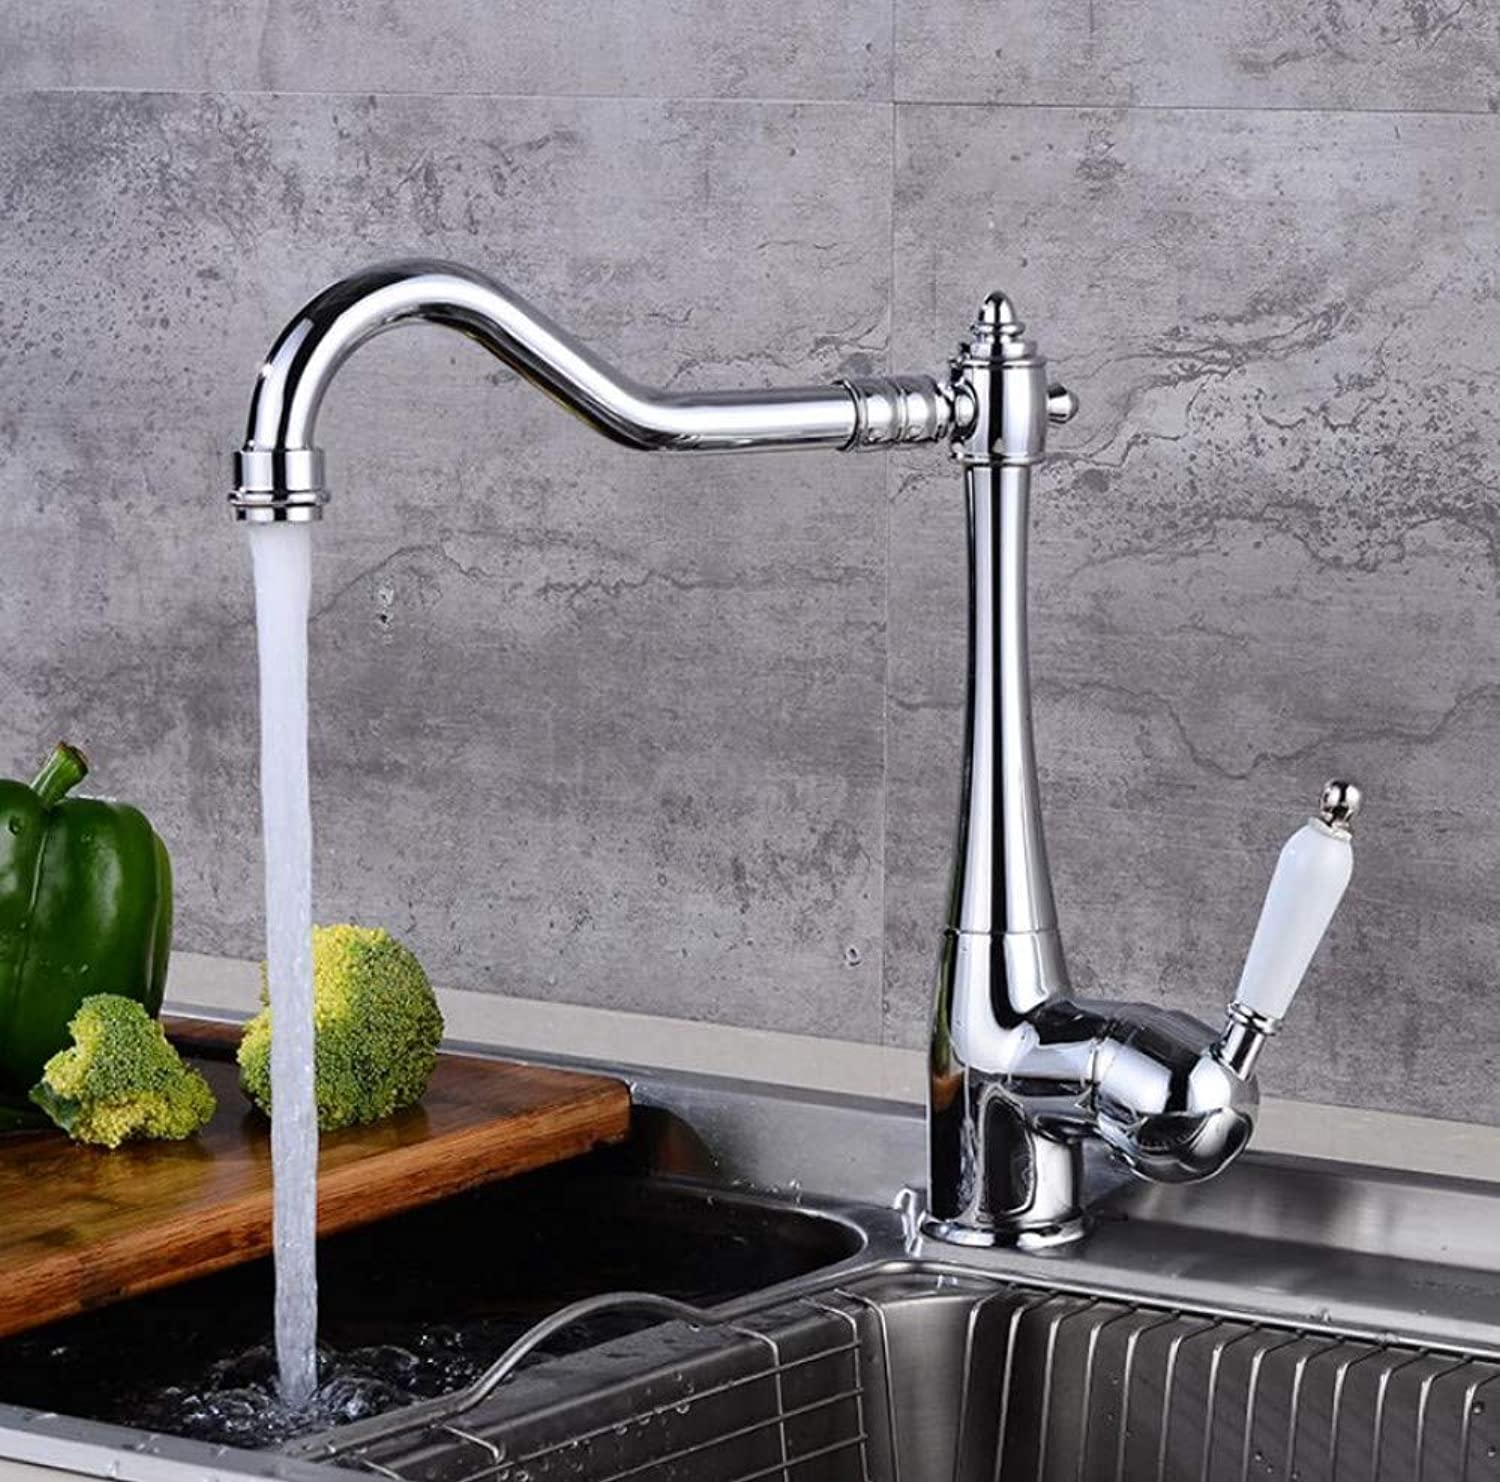 Modern Swivel Spout Fittings Waterfall Faucetkitchen and Bathroom Spring Faucet Silver Wash Dish Basin Mixed Faucet Lifting Kitchen and Bathroom Cold and Hot Water Faucet